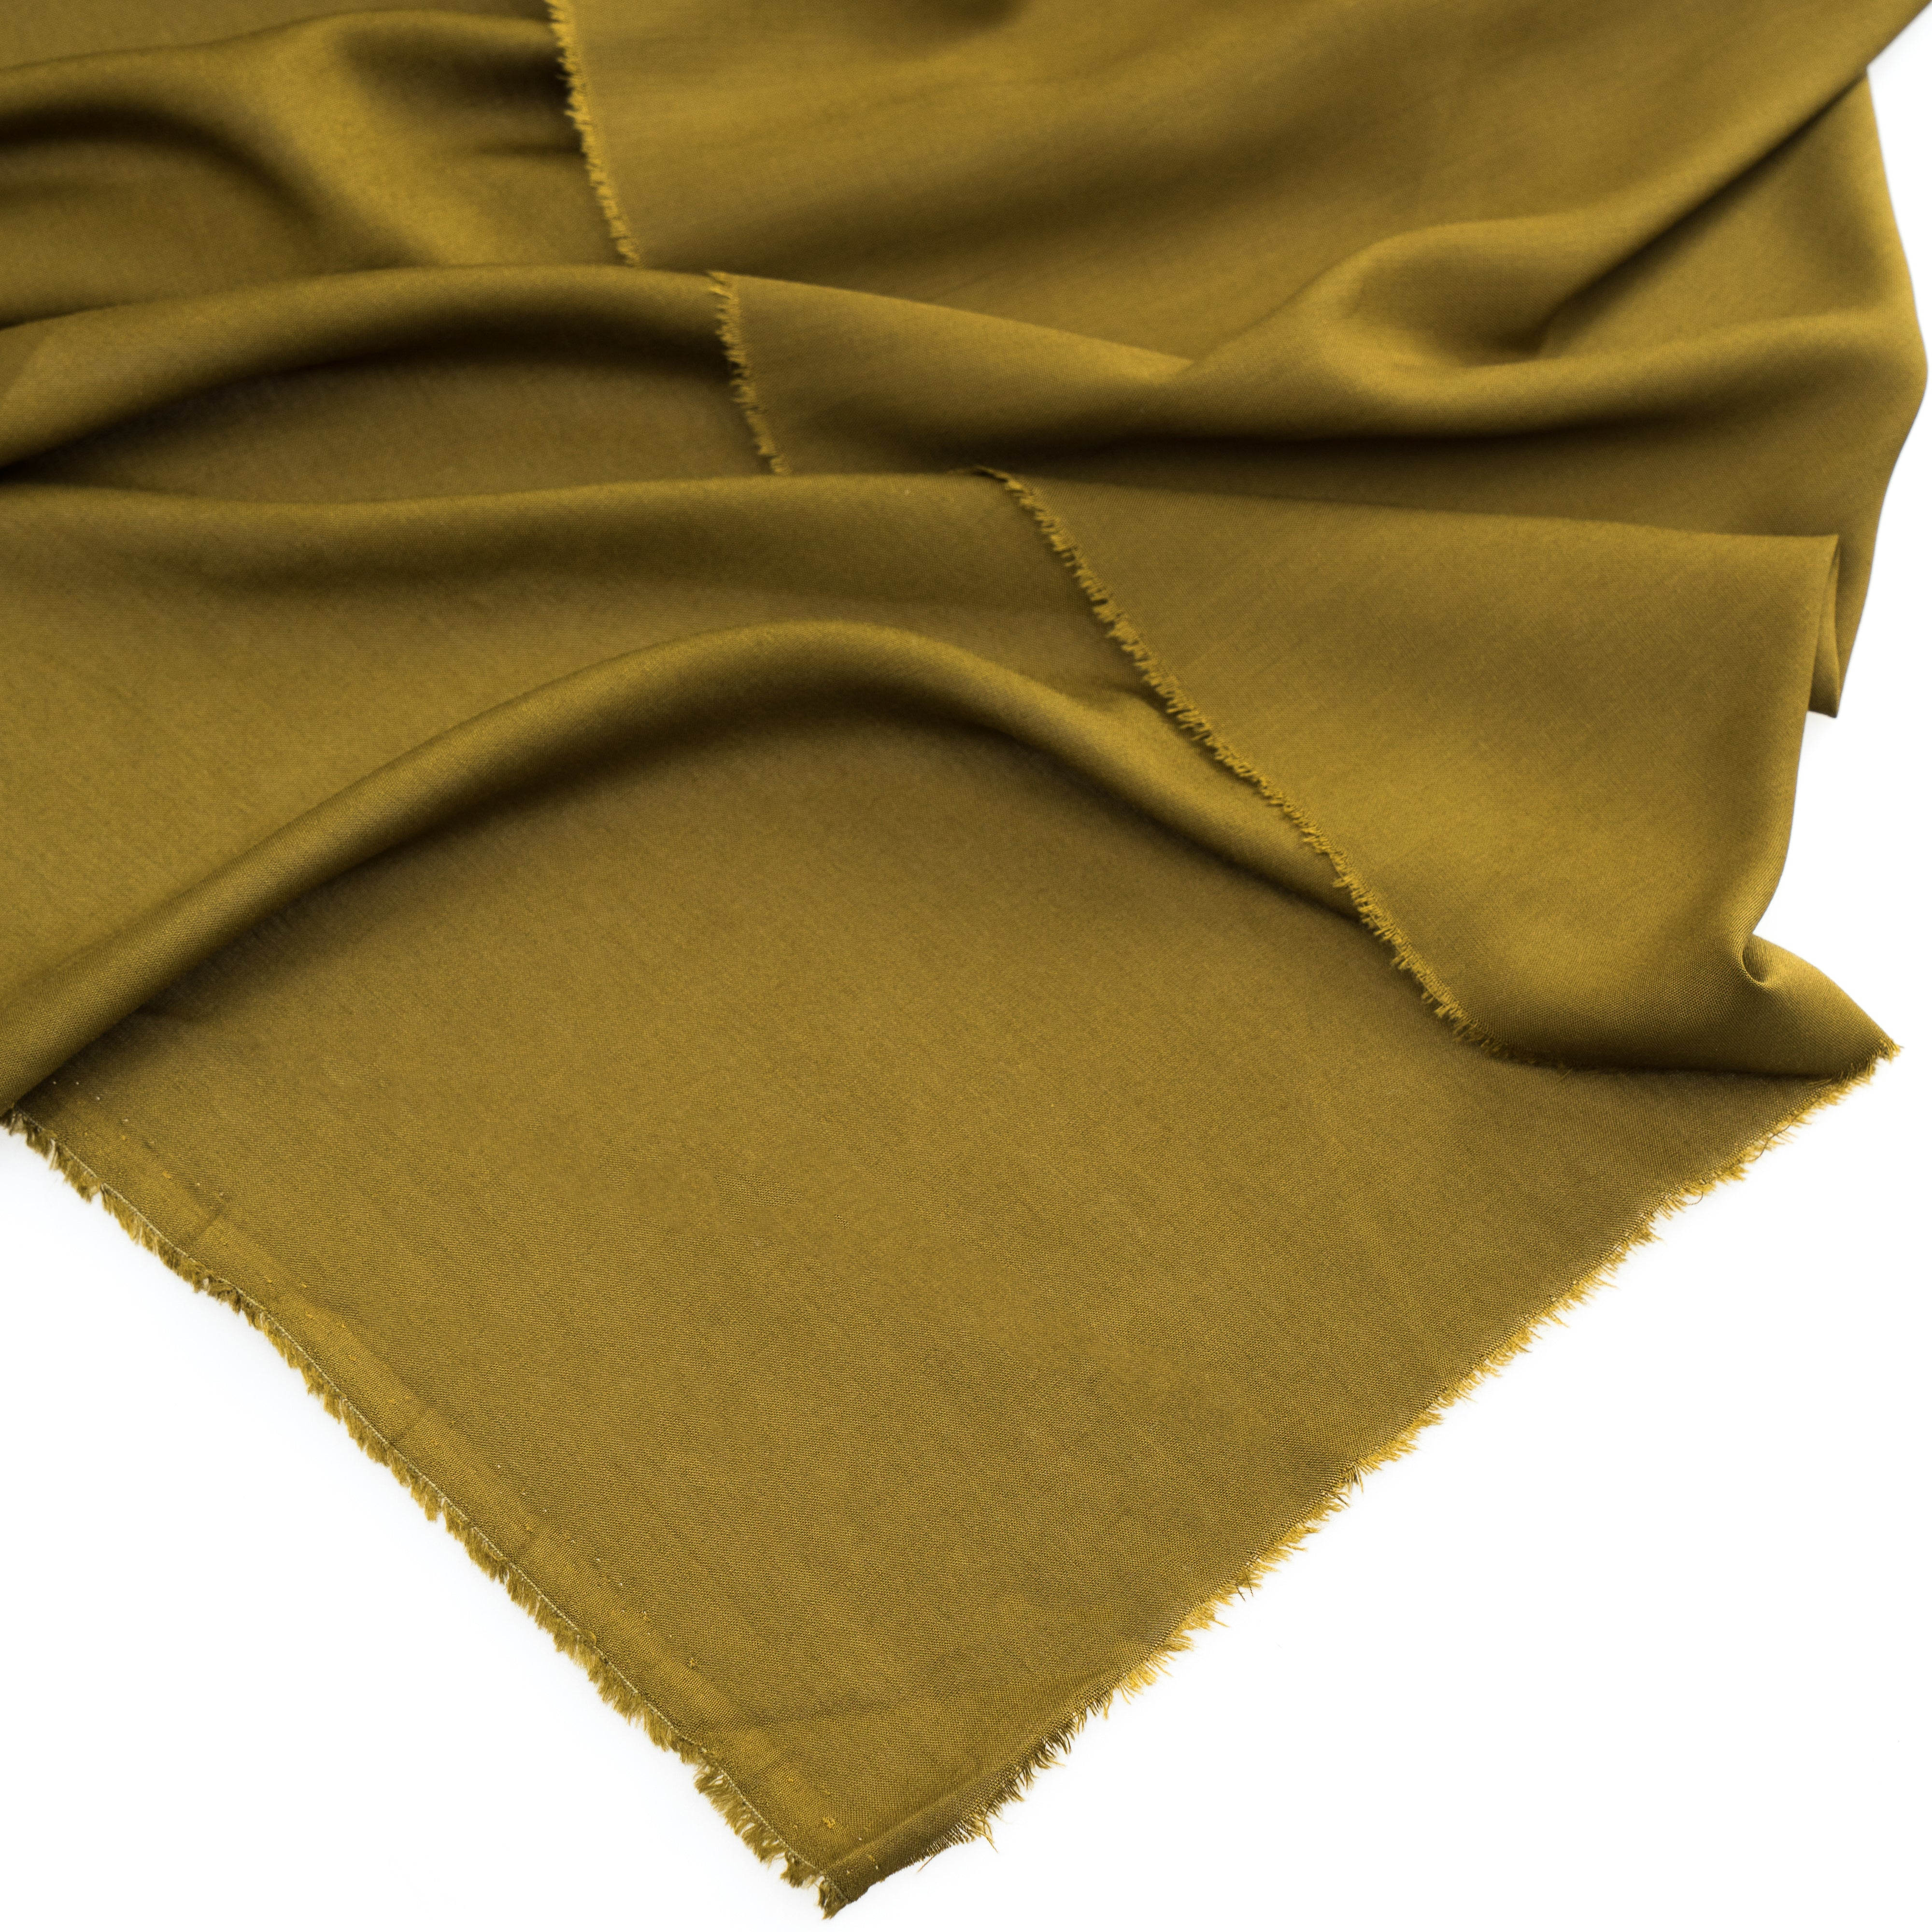 Rayon Viscose Voile